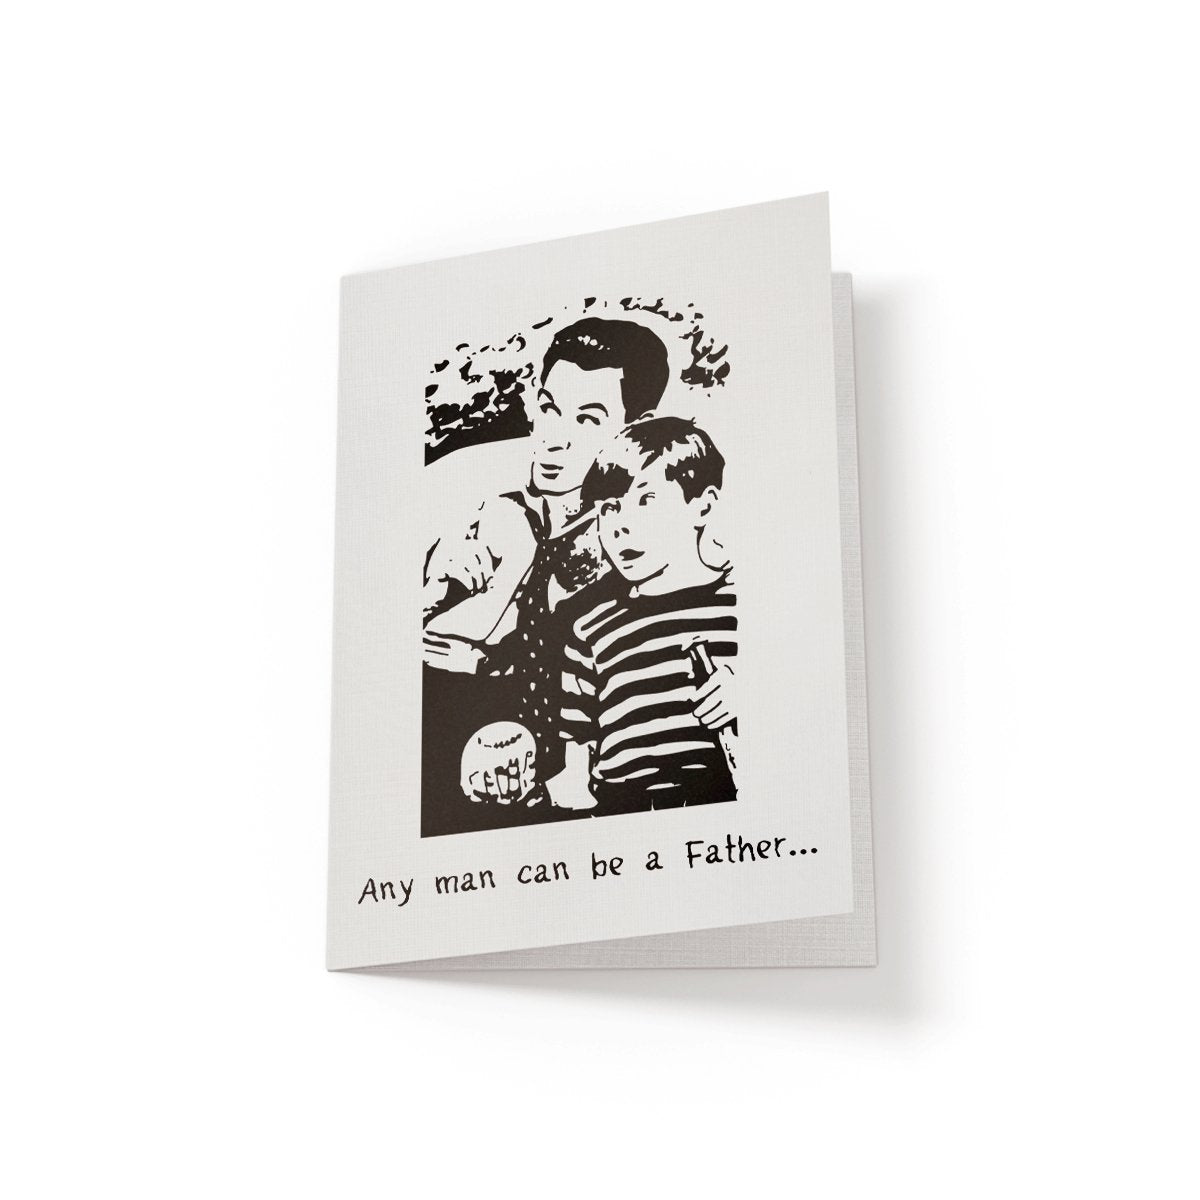 Any man can be a father - Greeting Card - Netties Expressions